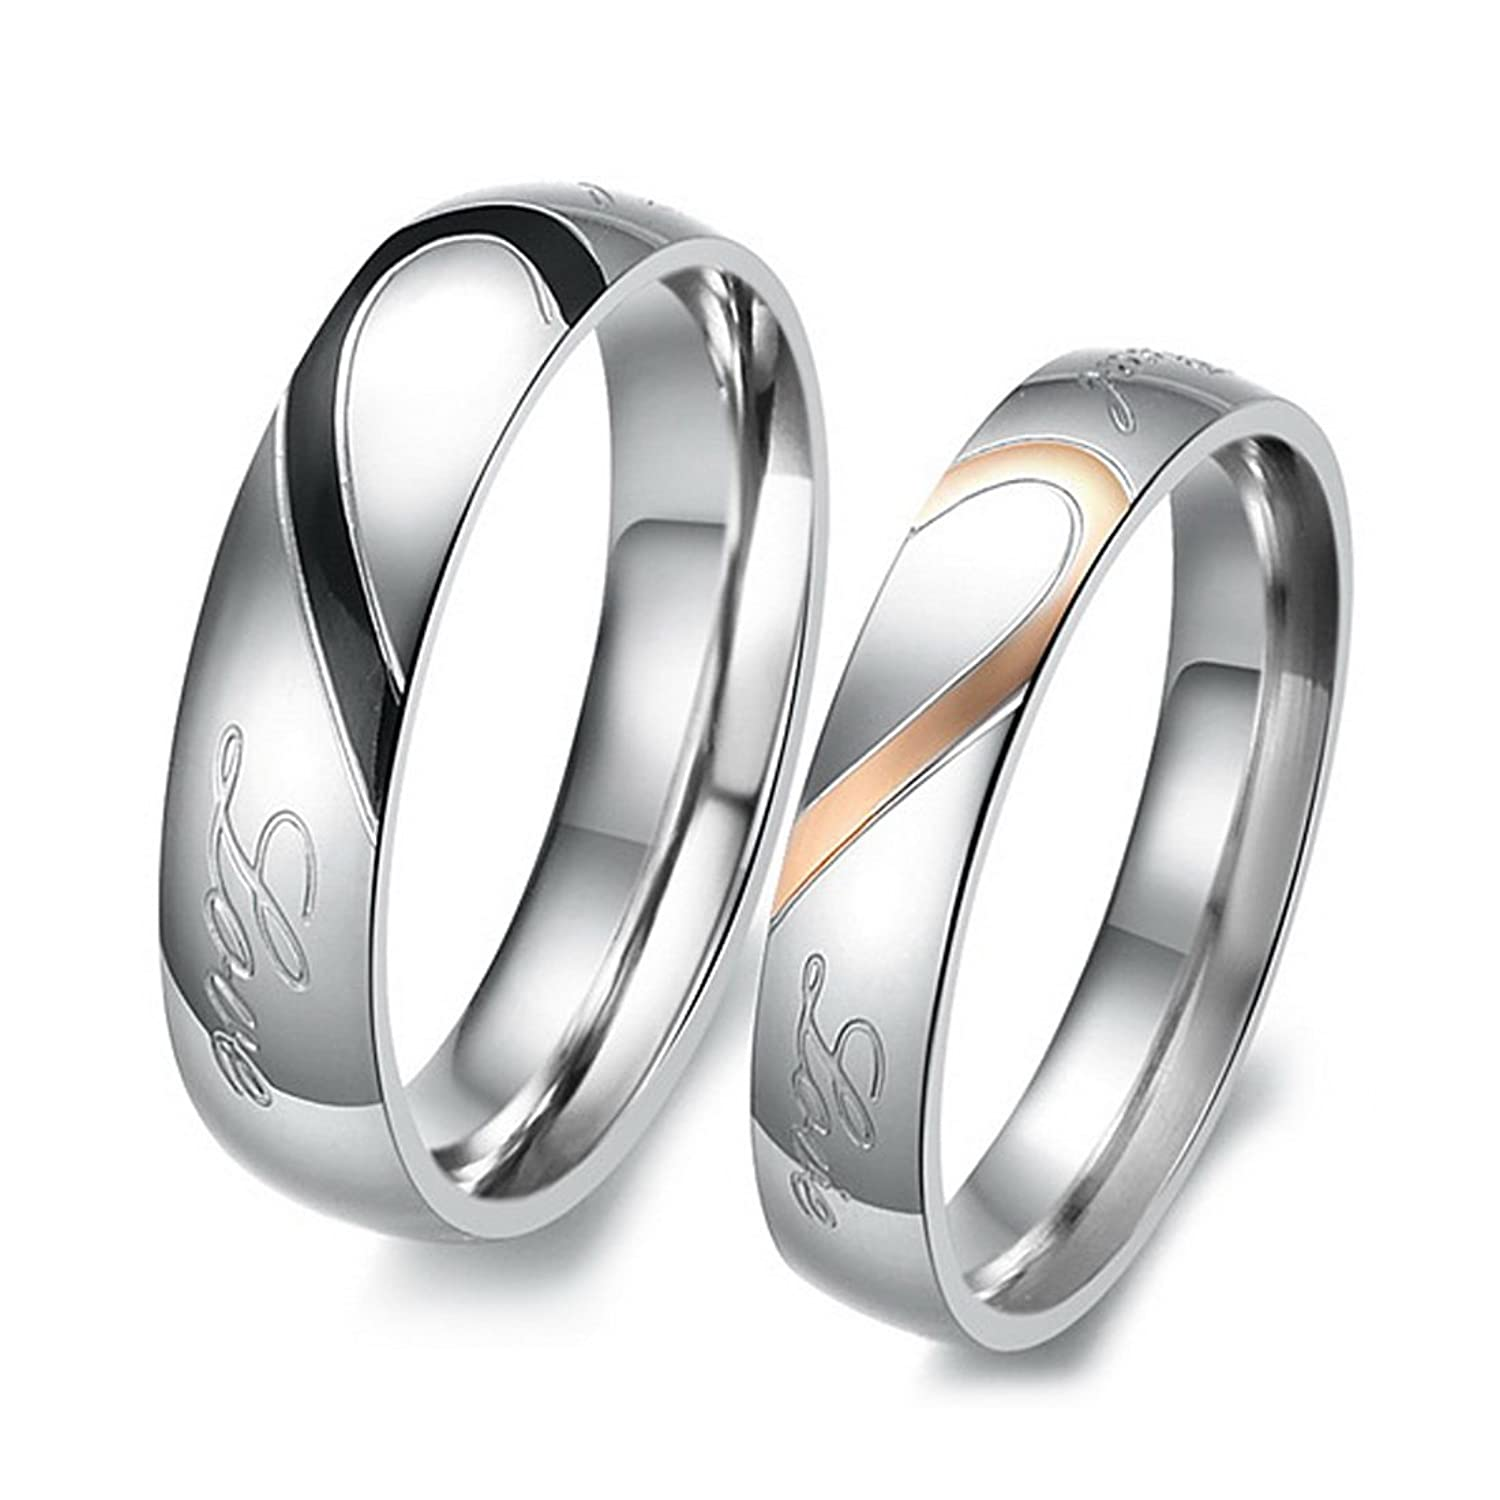 product rings stainless silver alliance couple quality ring bands band steel heart colour home